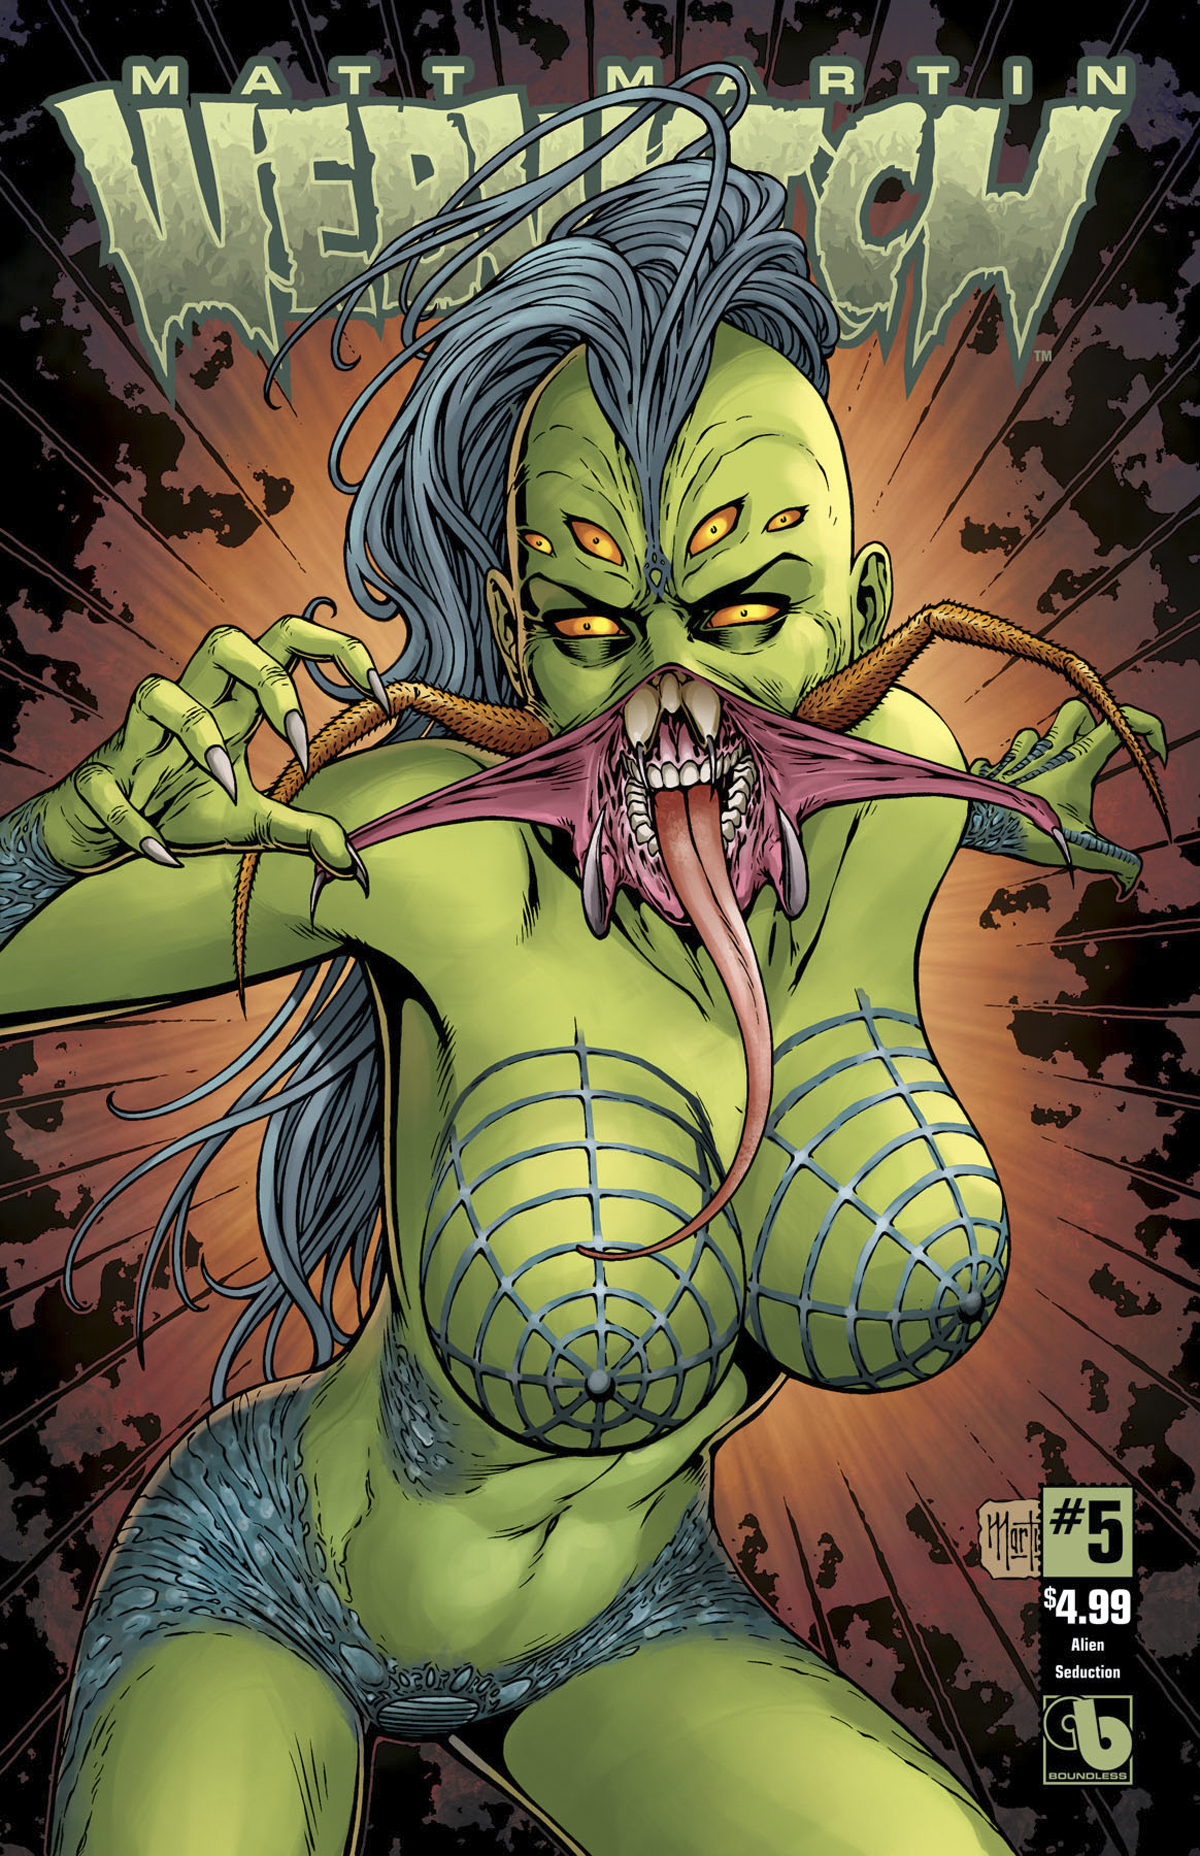 WEBWITCH #5 (OF 5) ALIEN SEDUCTION CVR